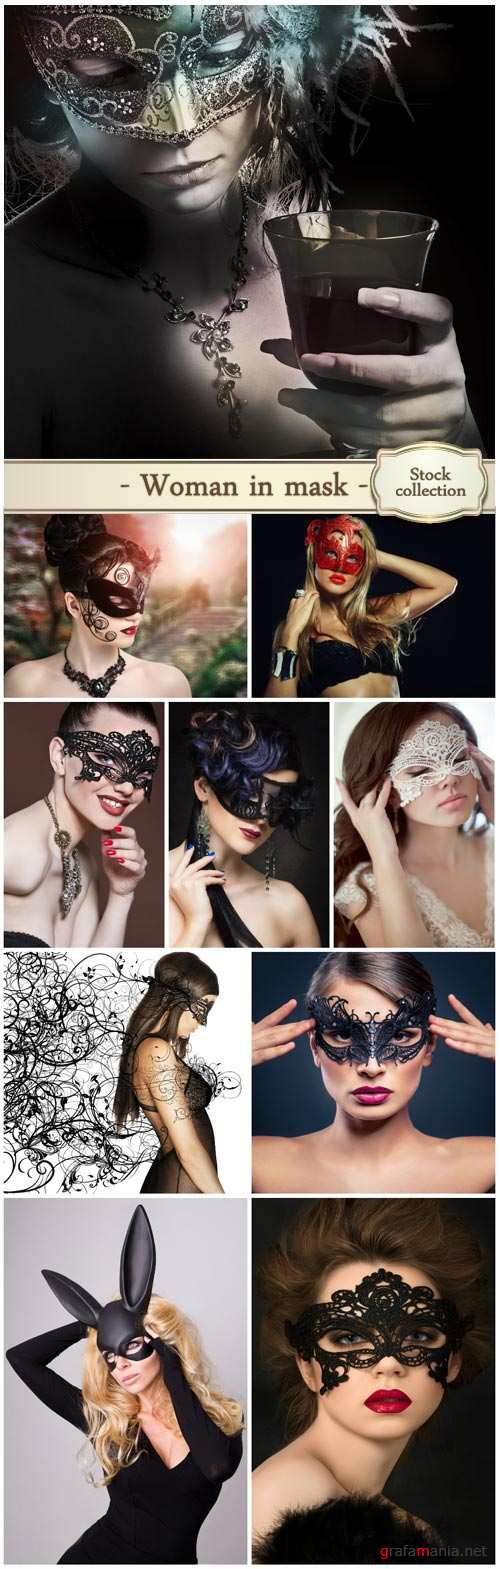 Women in masks - stock photos